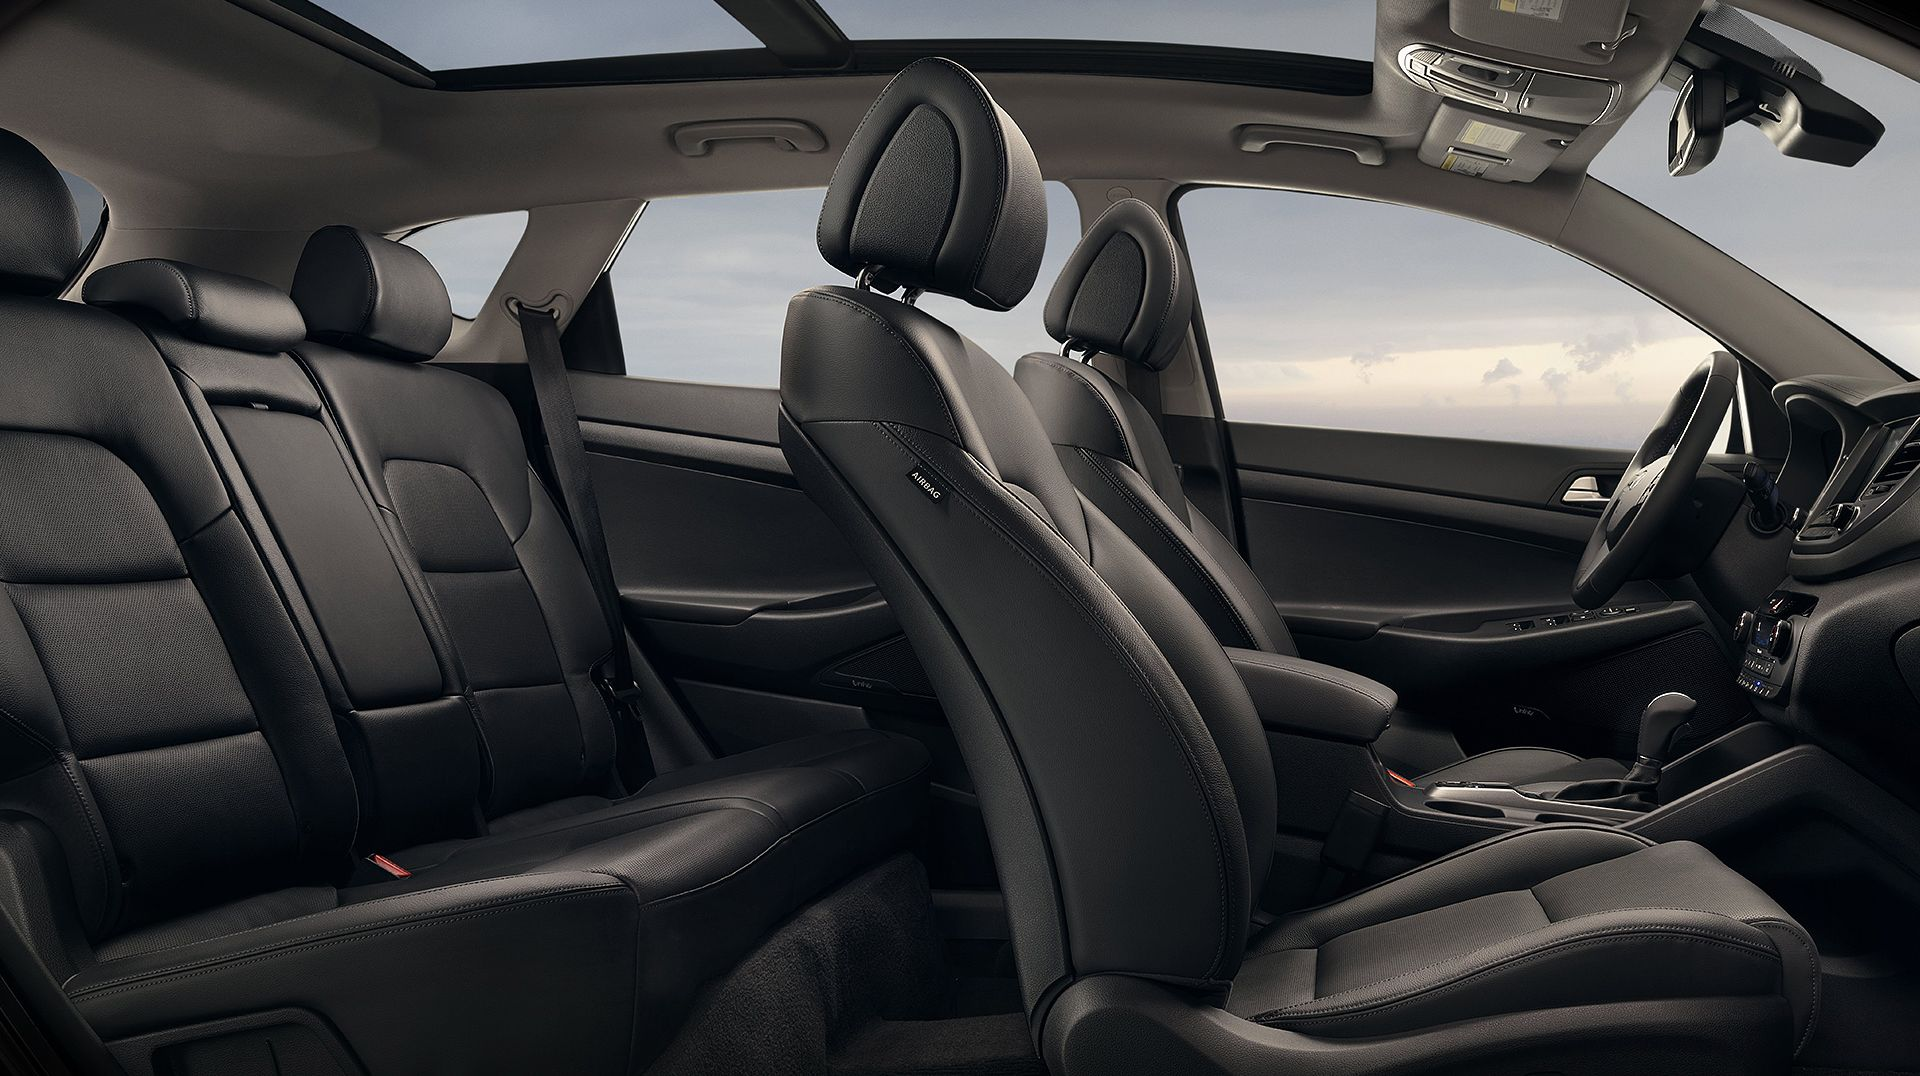 Take a Seat in Pure Luxury in the Hyundai Tucson